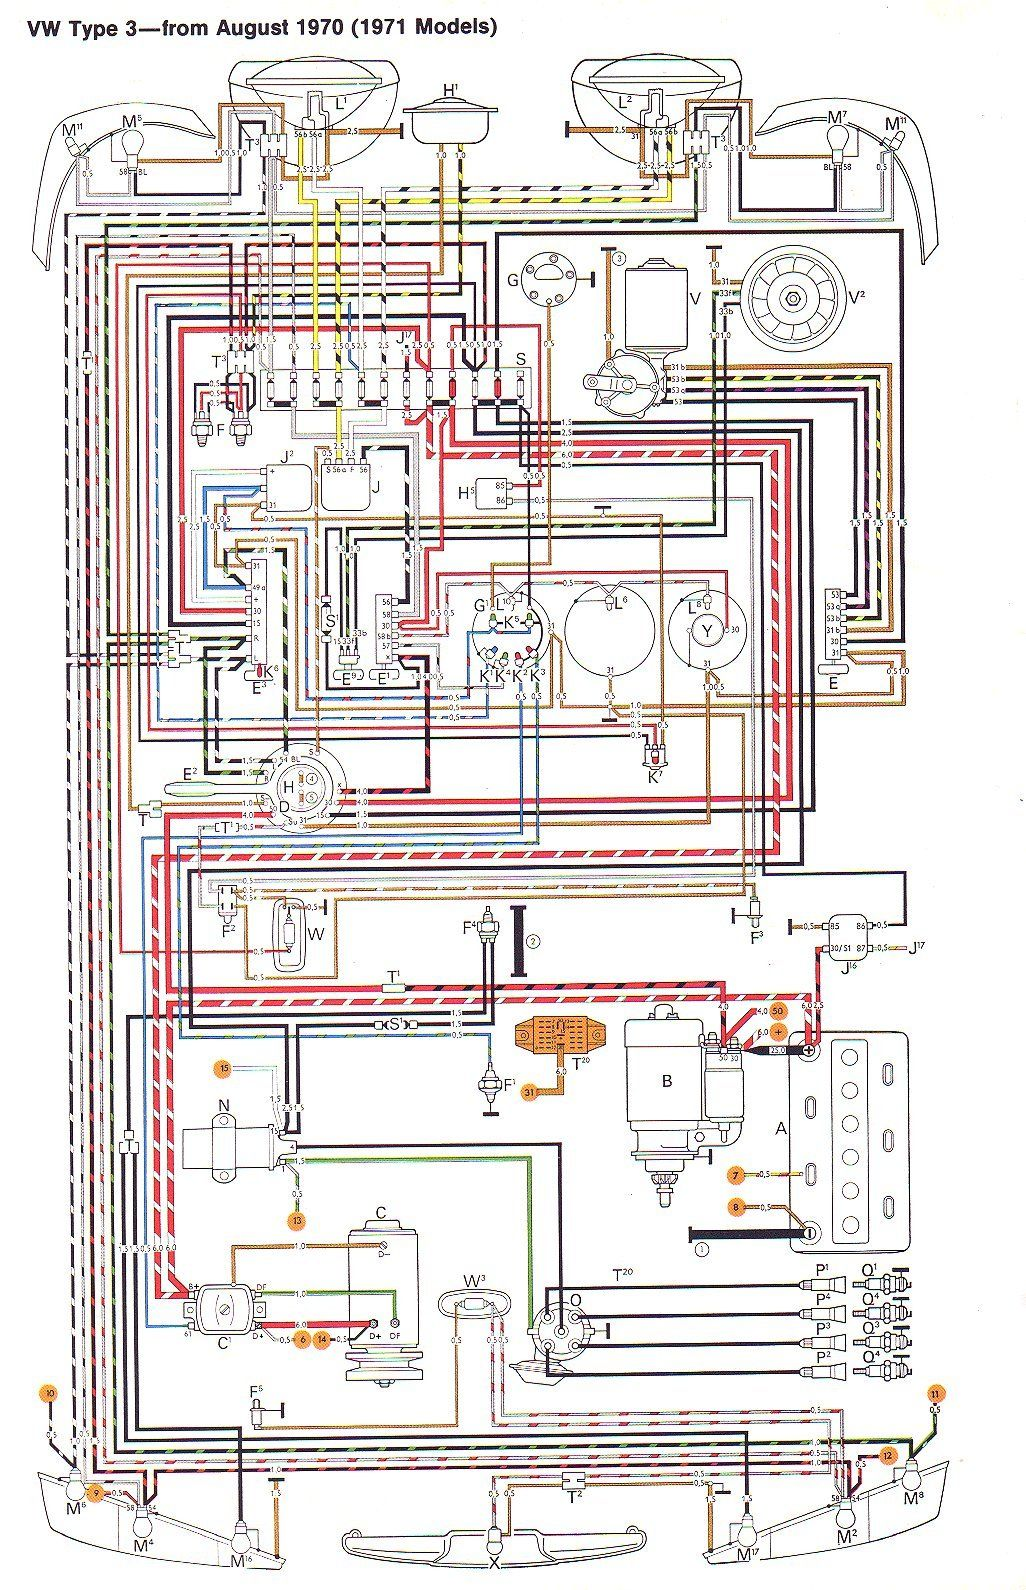 e0db58370f79a63d02d45f00cf63f44a 71 vw t3 wiring diagram car projects pinterest volkswagen 1971 vw bus wiring diagram at nearapp.co